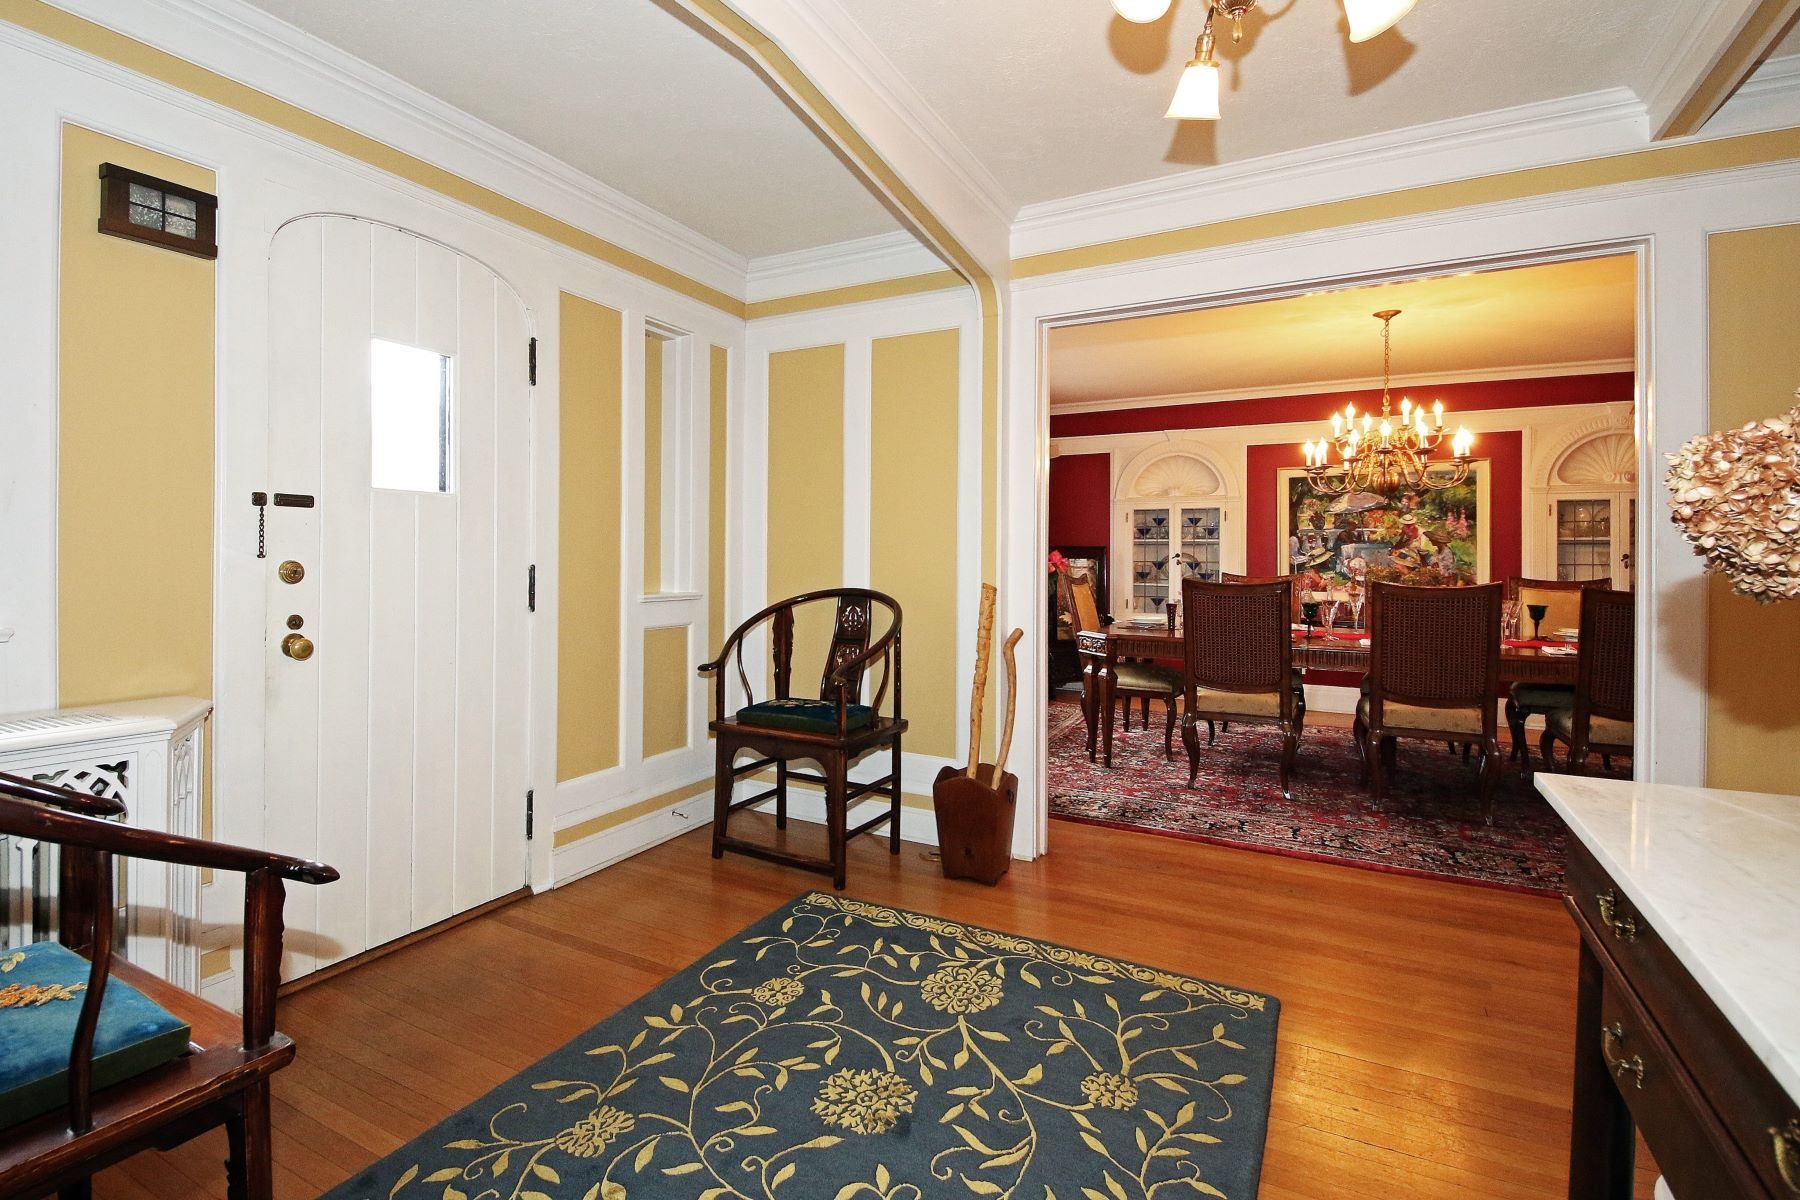 Single Family Homes for Sale at Vintage Tudor 420 Brooklawn Avenue Bridgeport, Connecticut 06604 United States